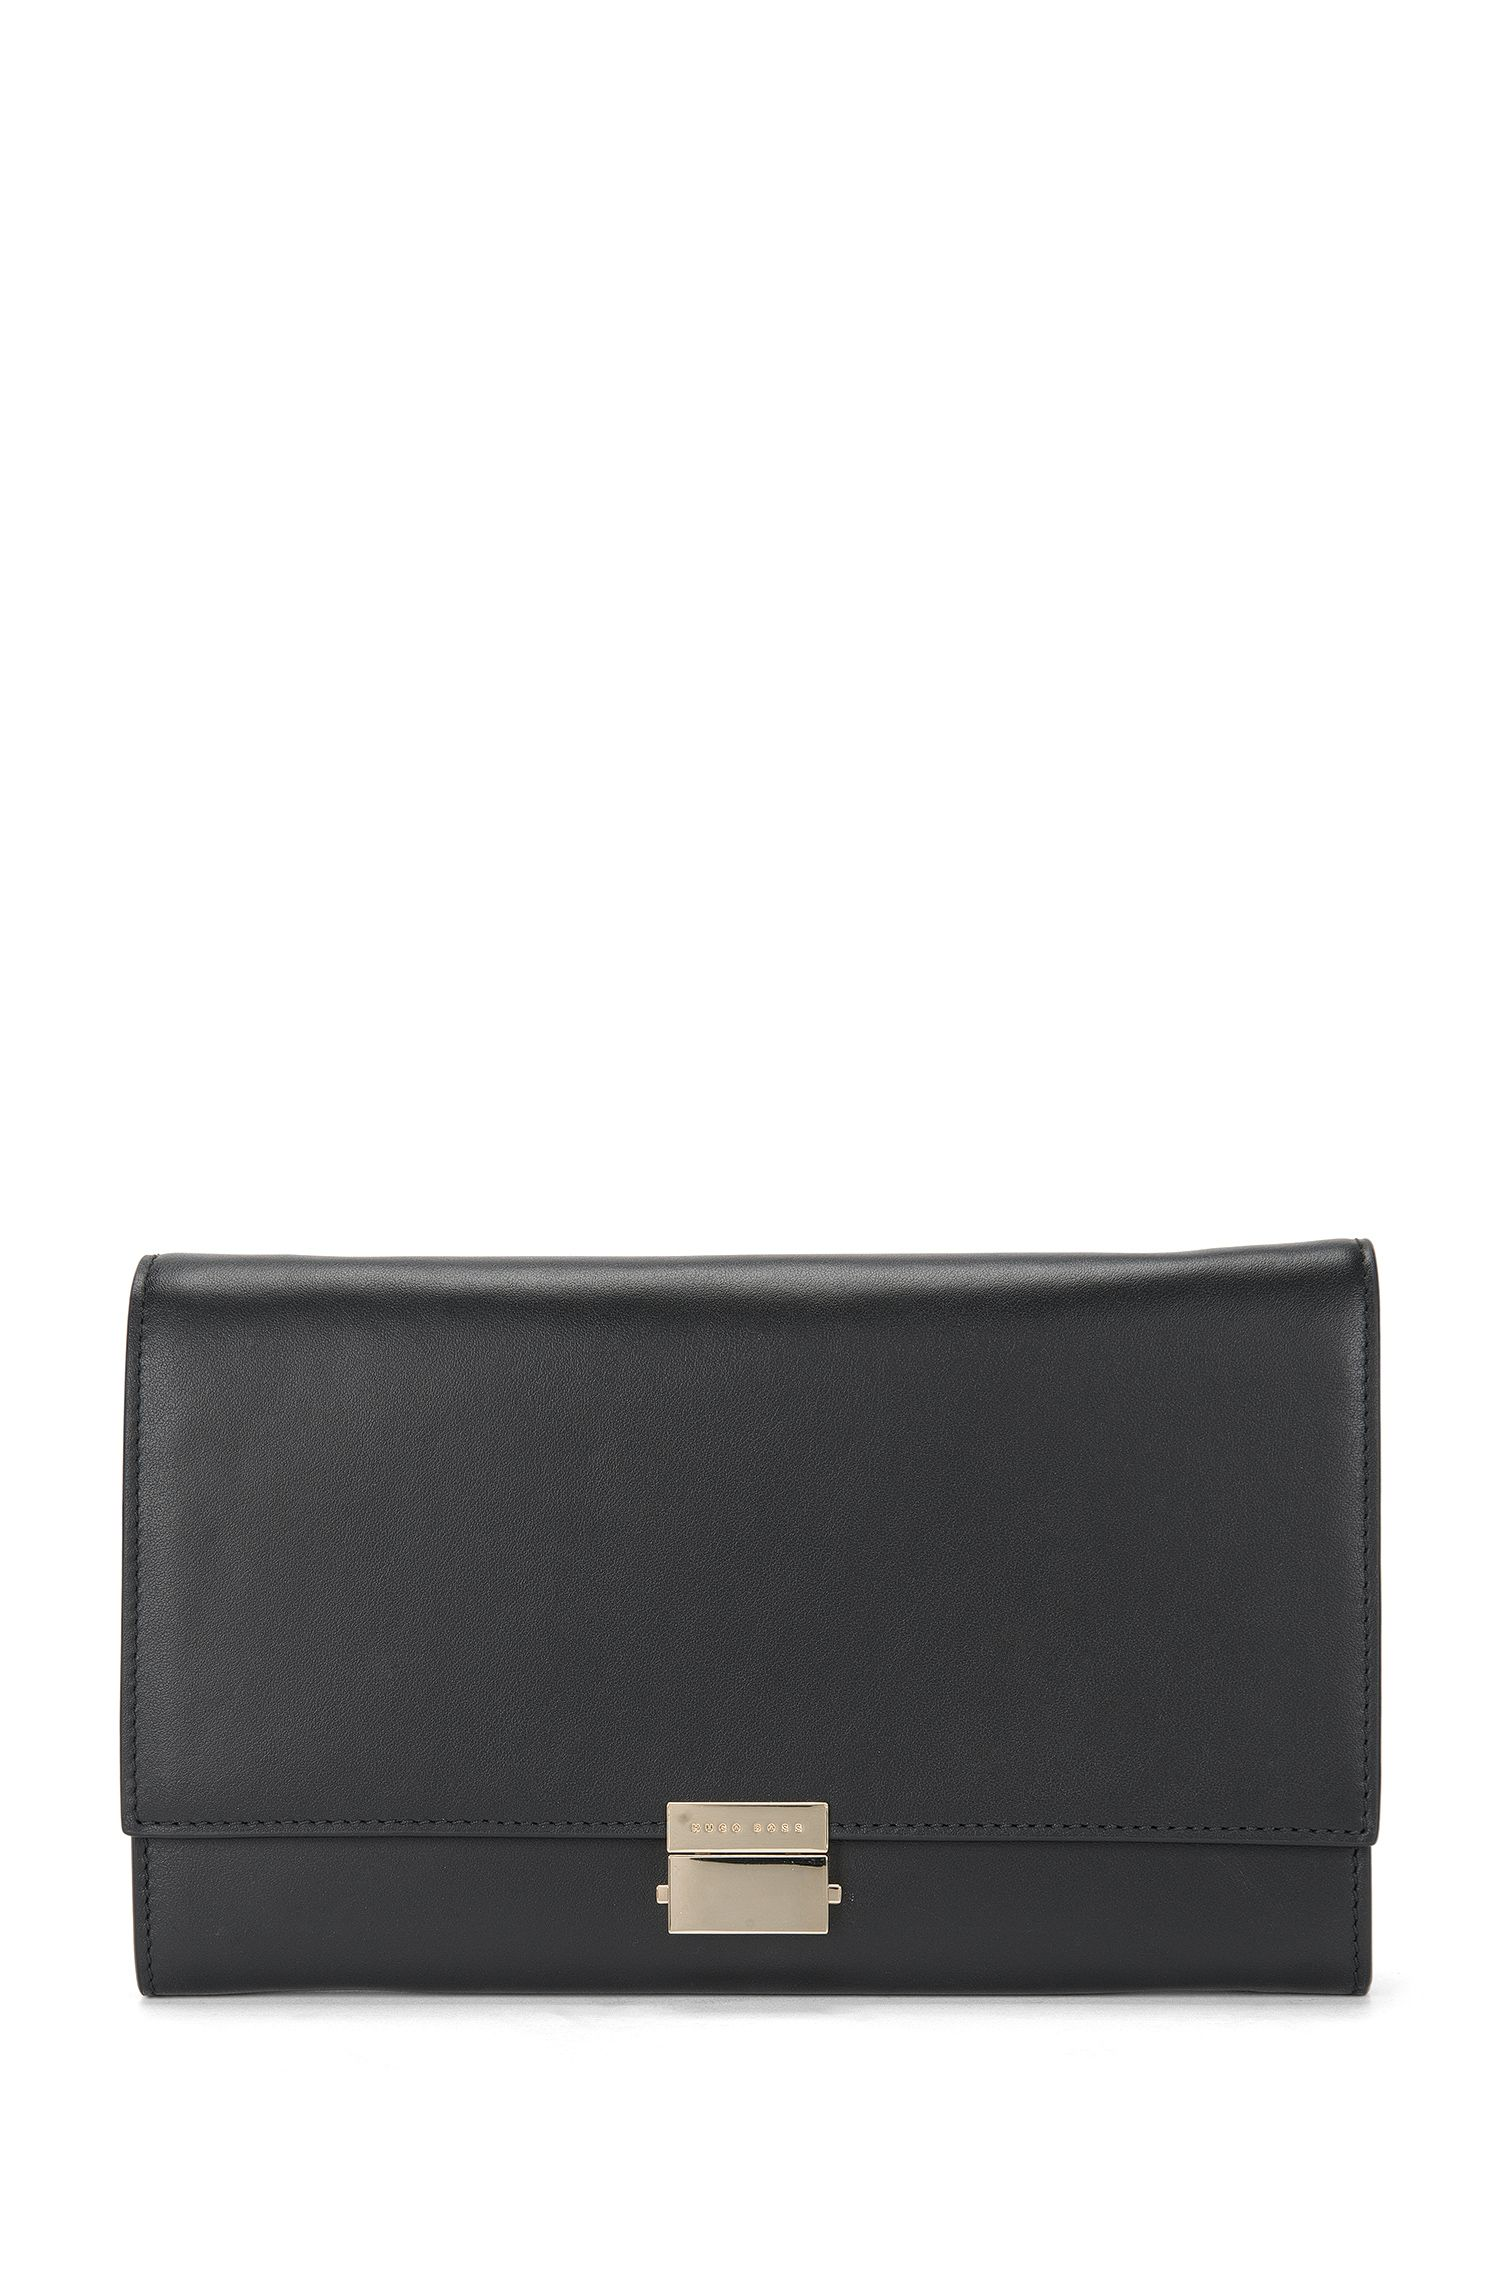 Effen clutch van leer met metaalketting: 'Munich Mini-M'